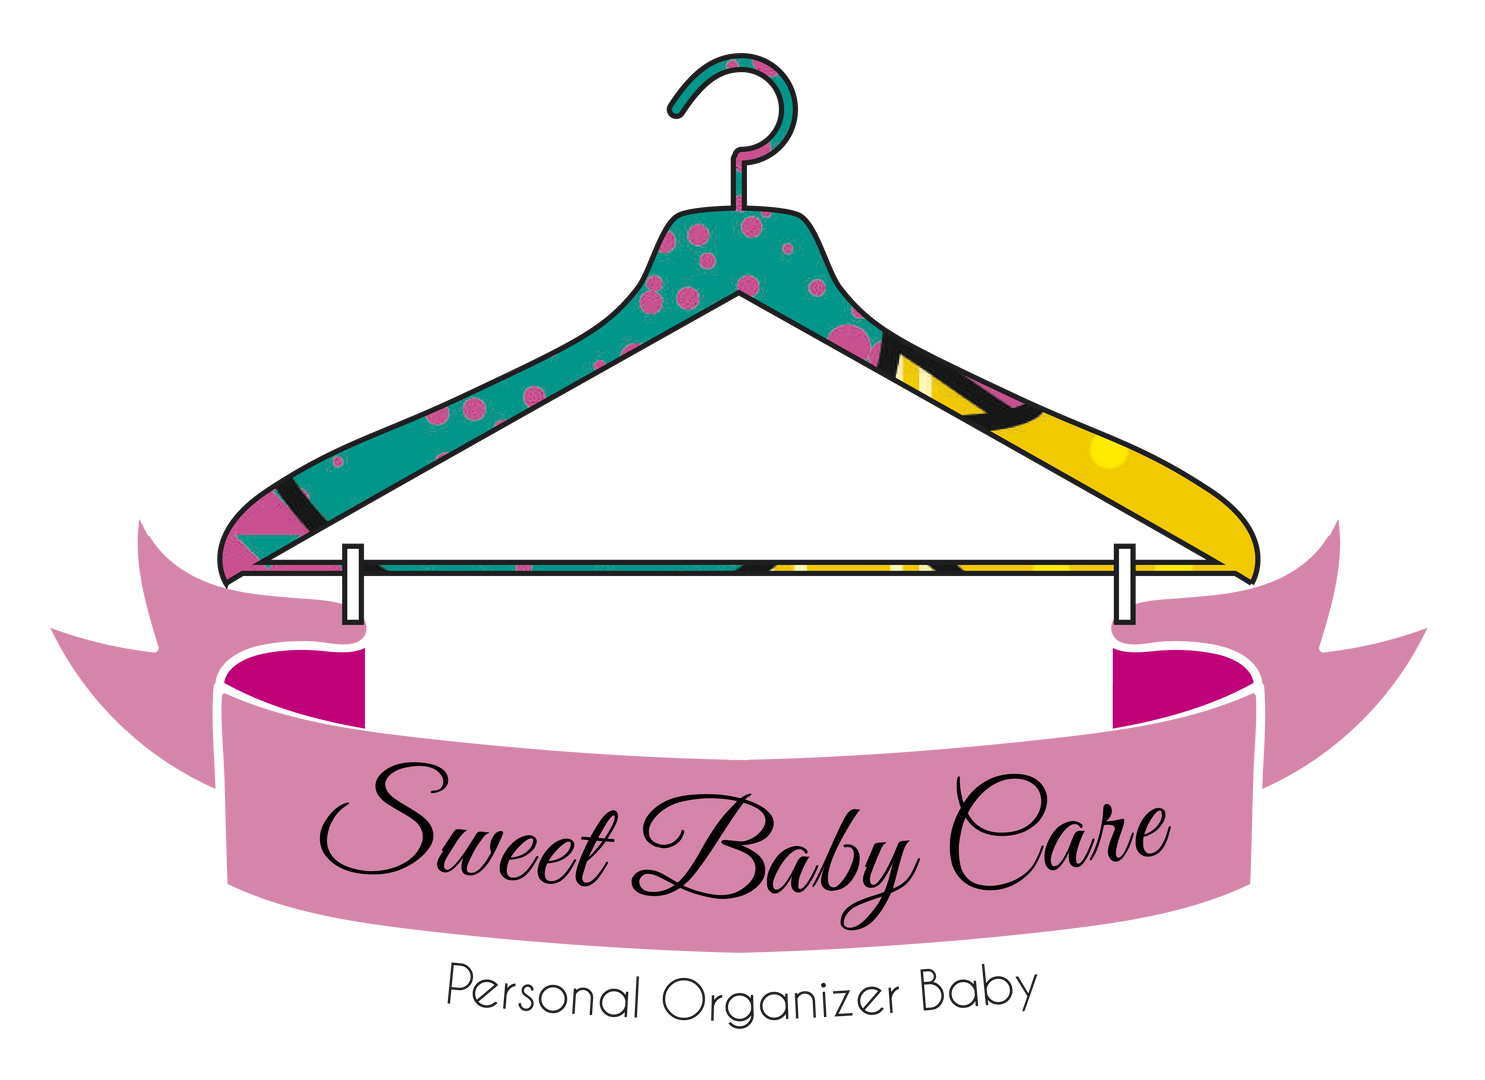 Sweet Baby Care - Personal Organizer